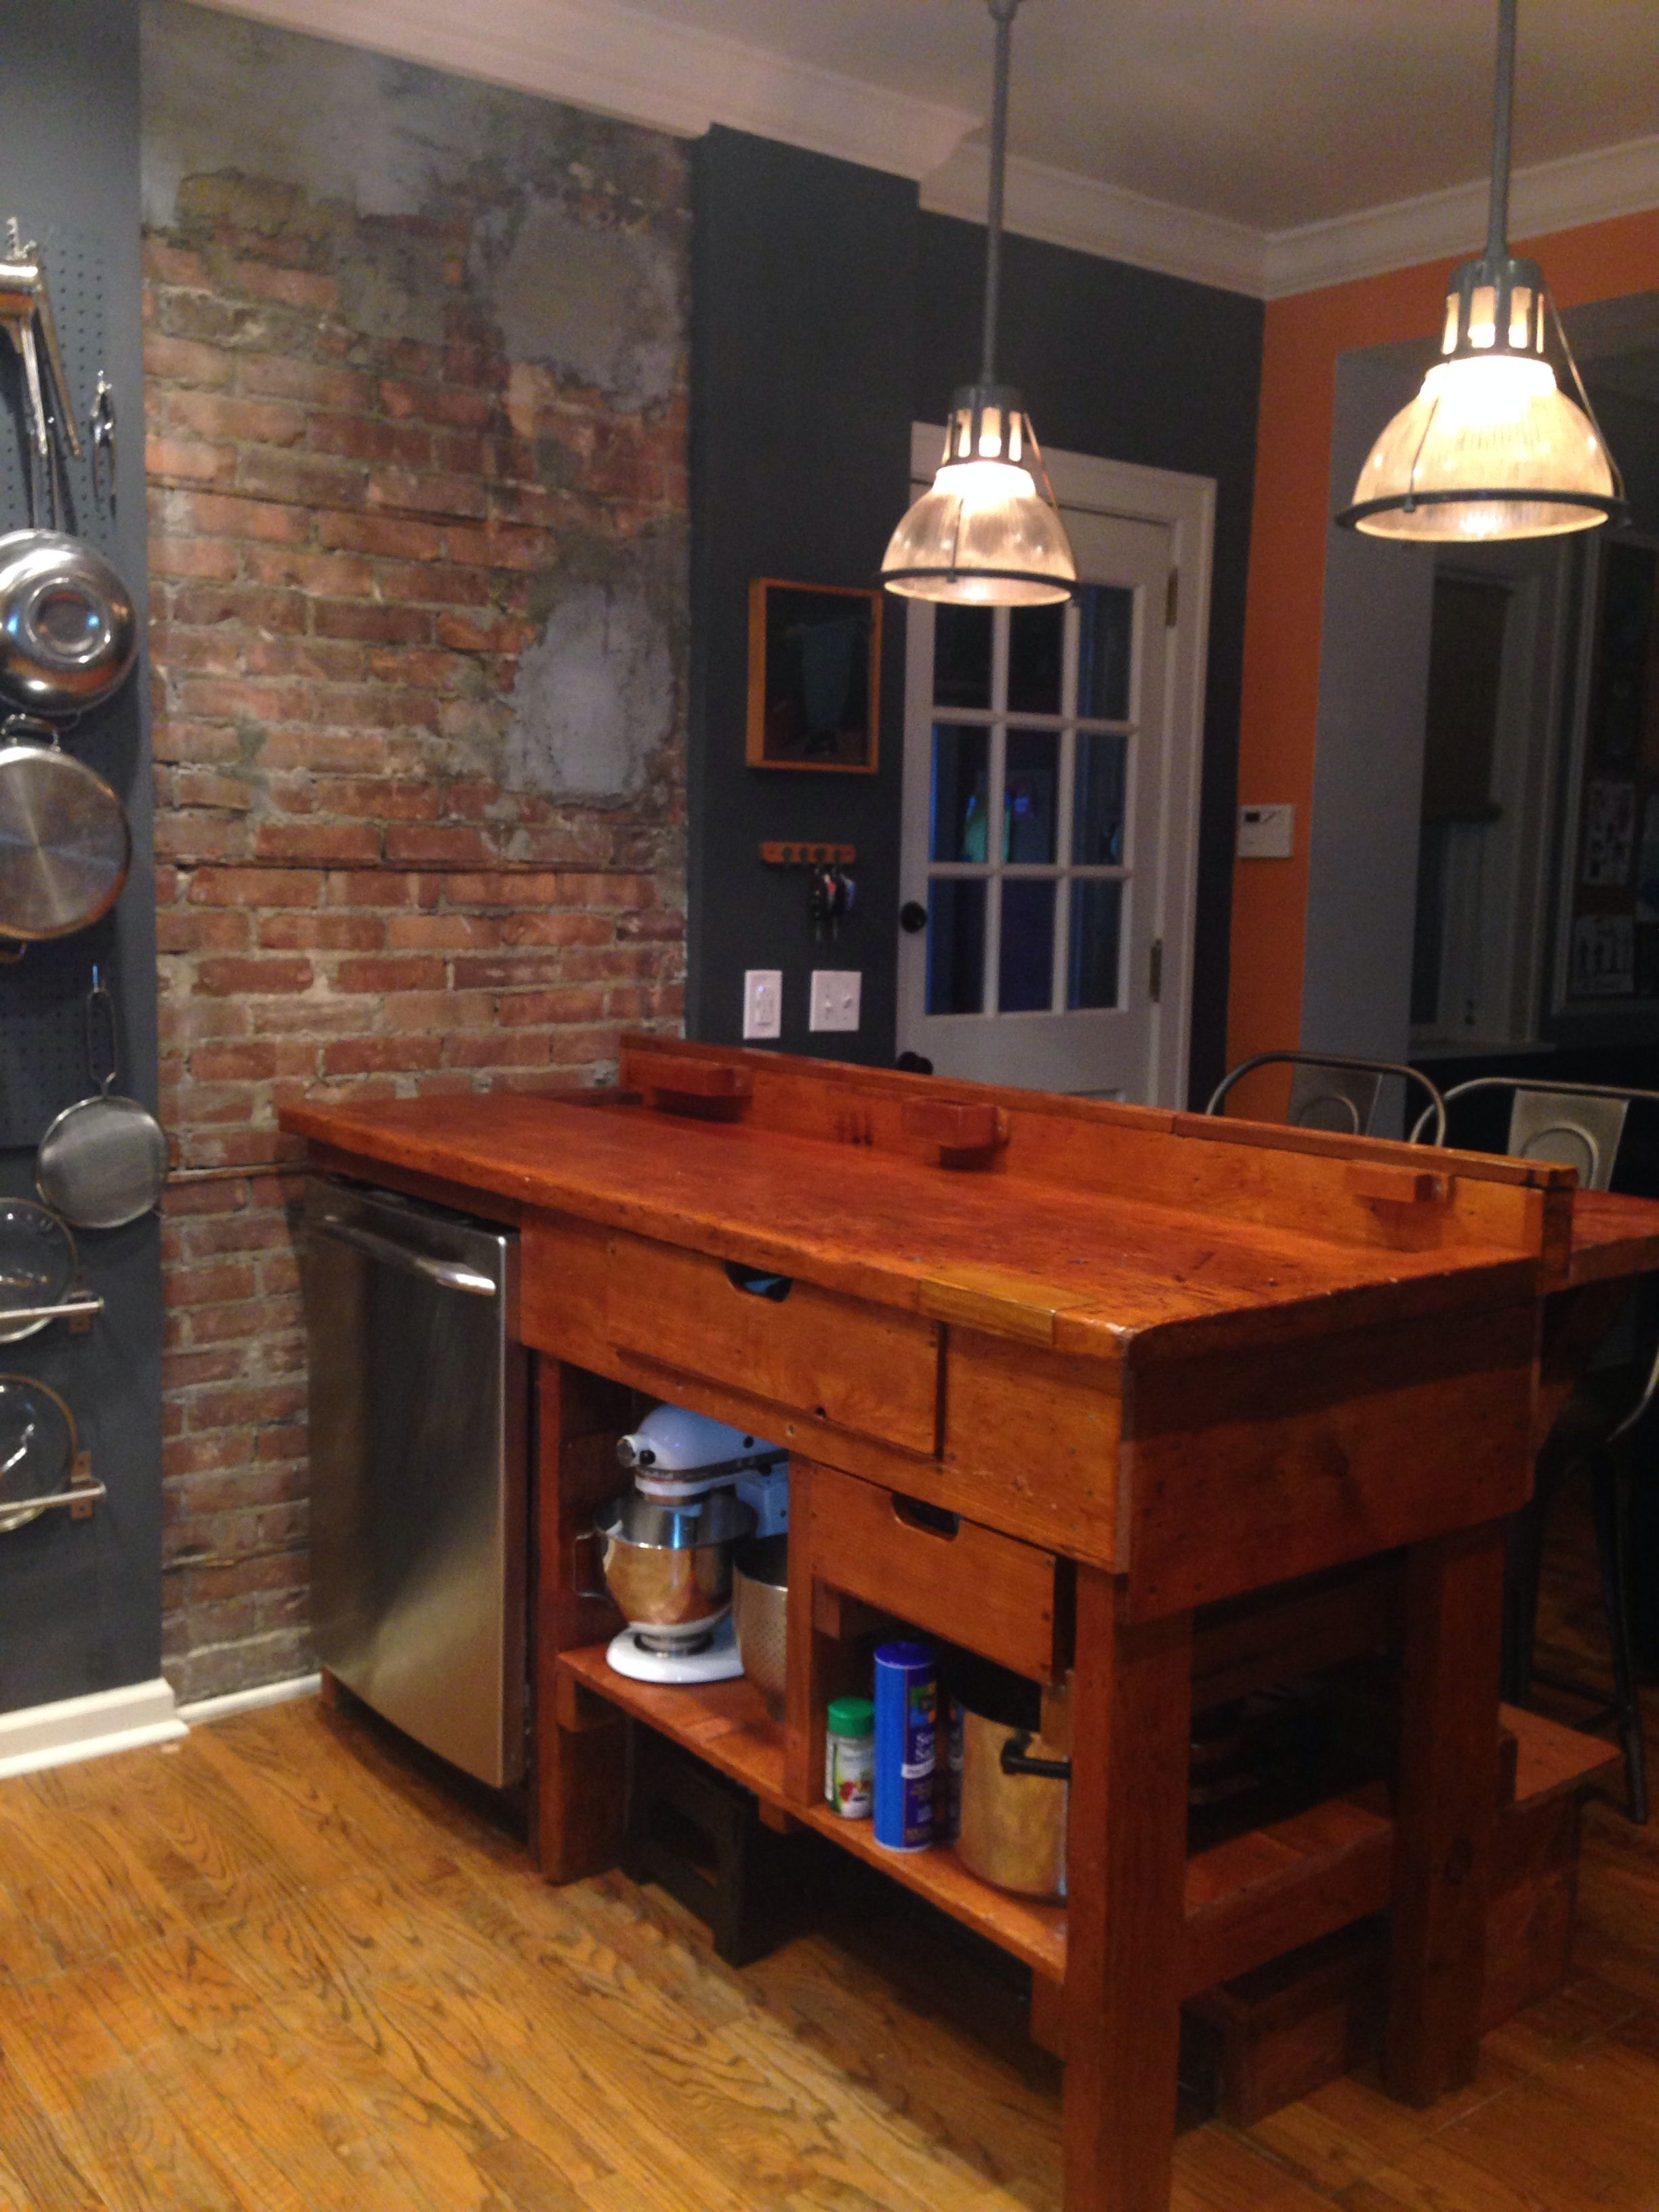 Antique workbench as kitchen island with exposed brick chimney